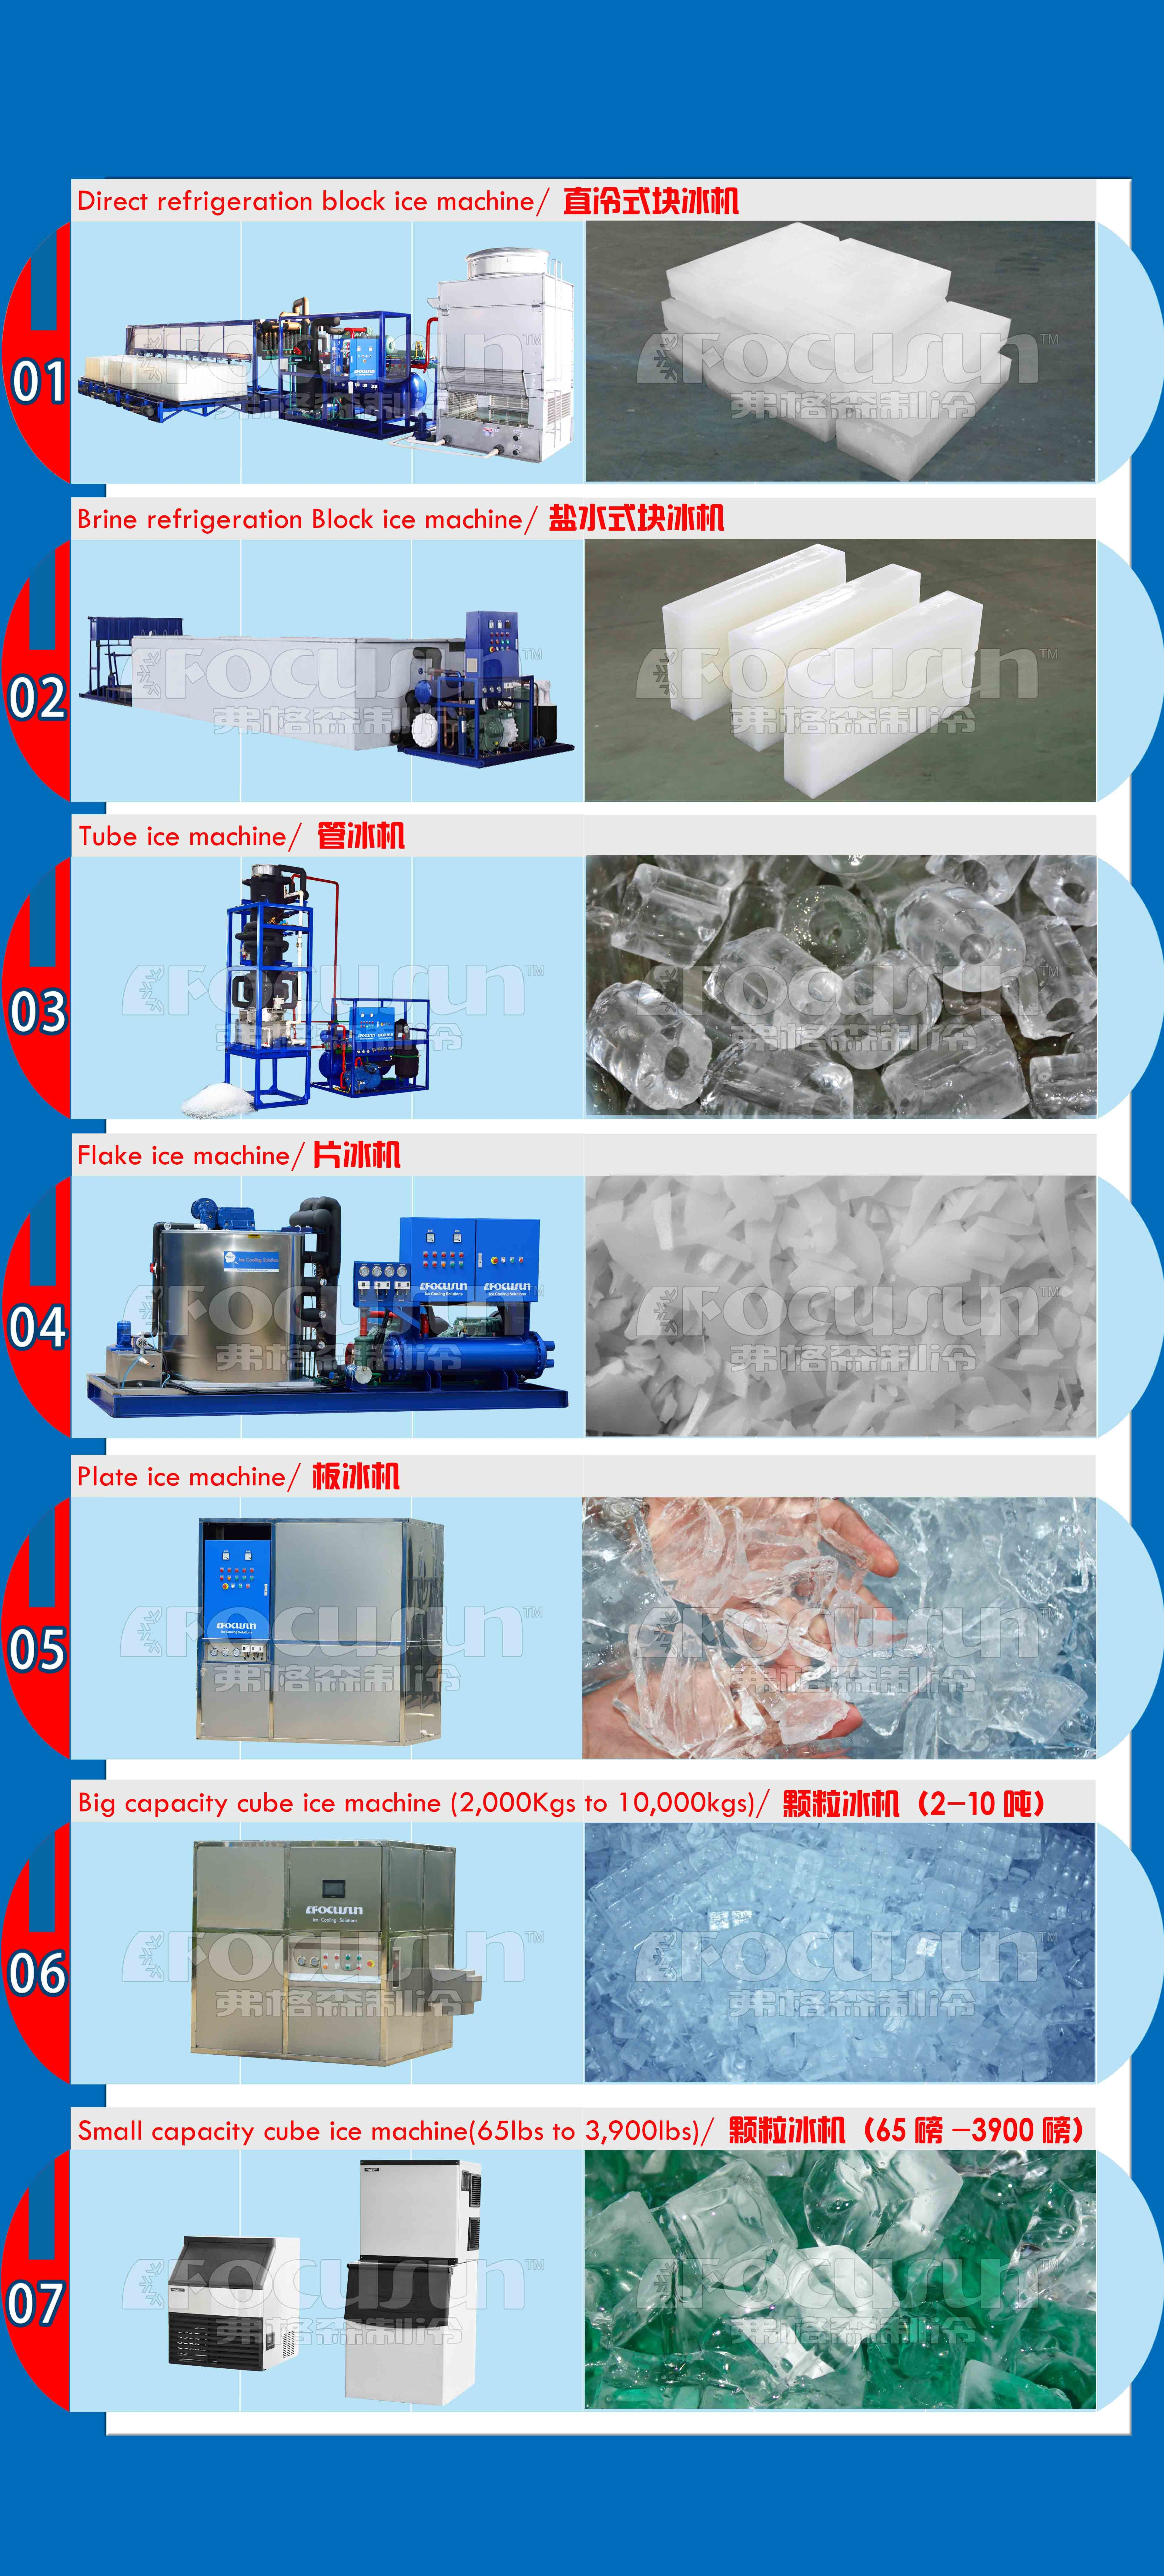 Focusun We Support All Kinds Of Ice Making Machine Cold Storage